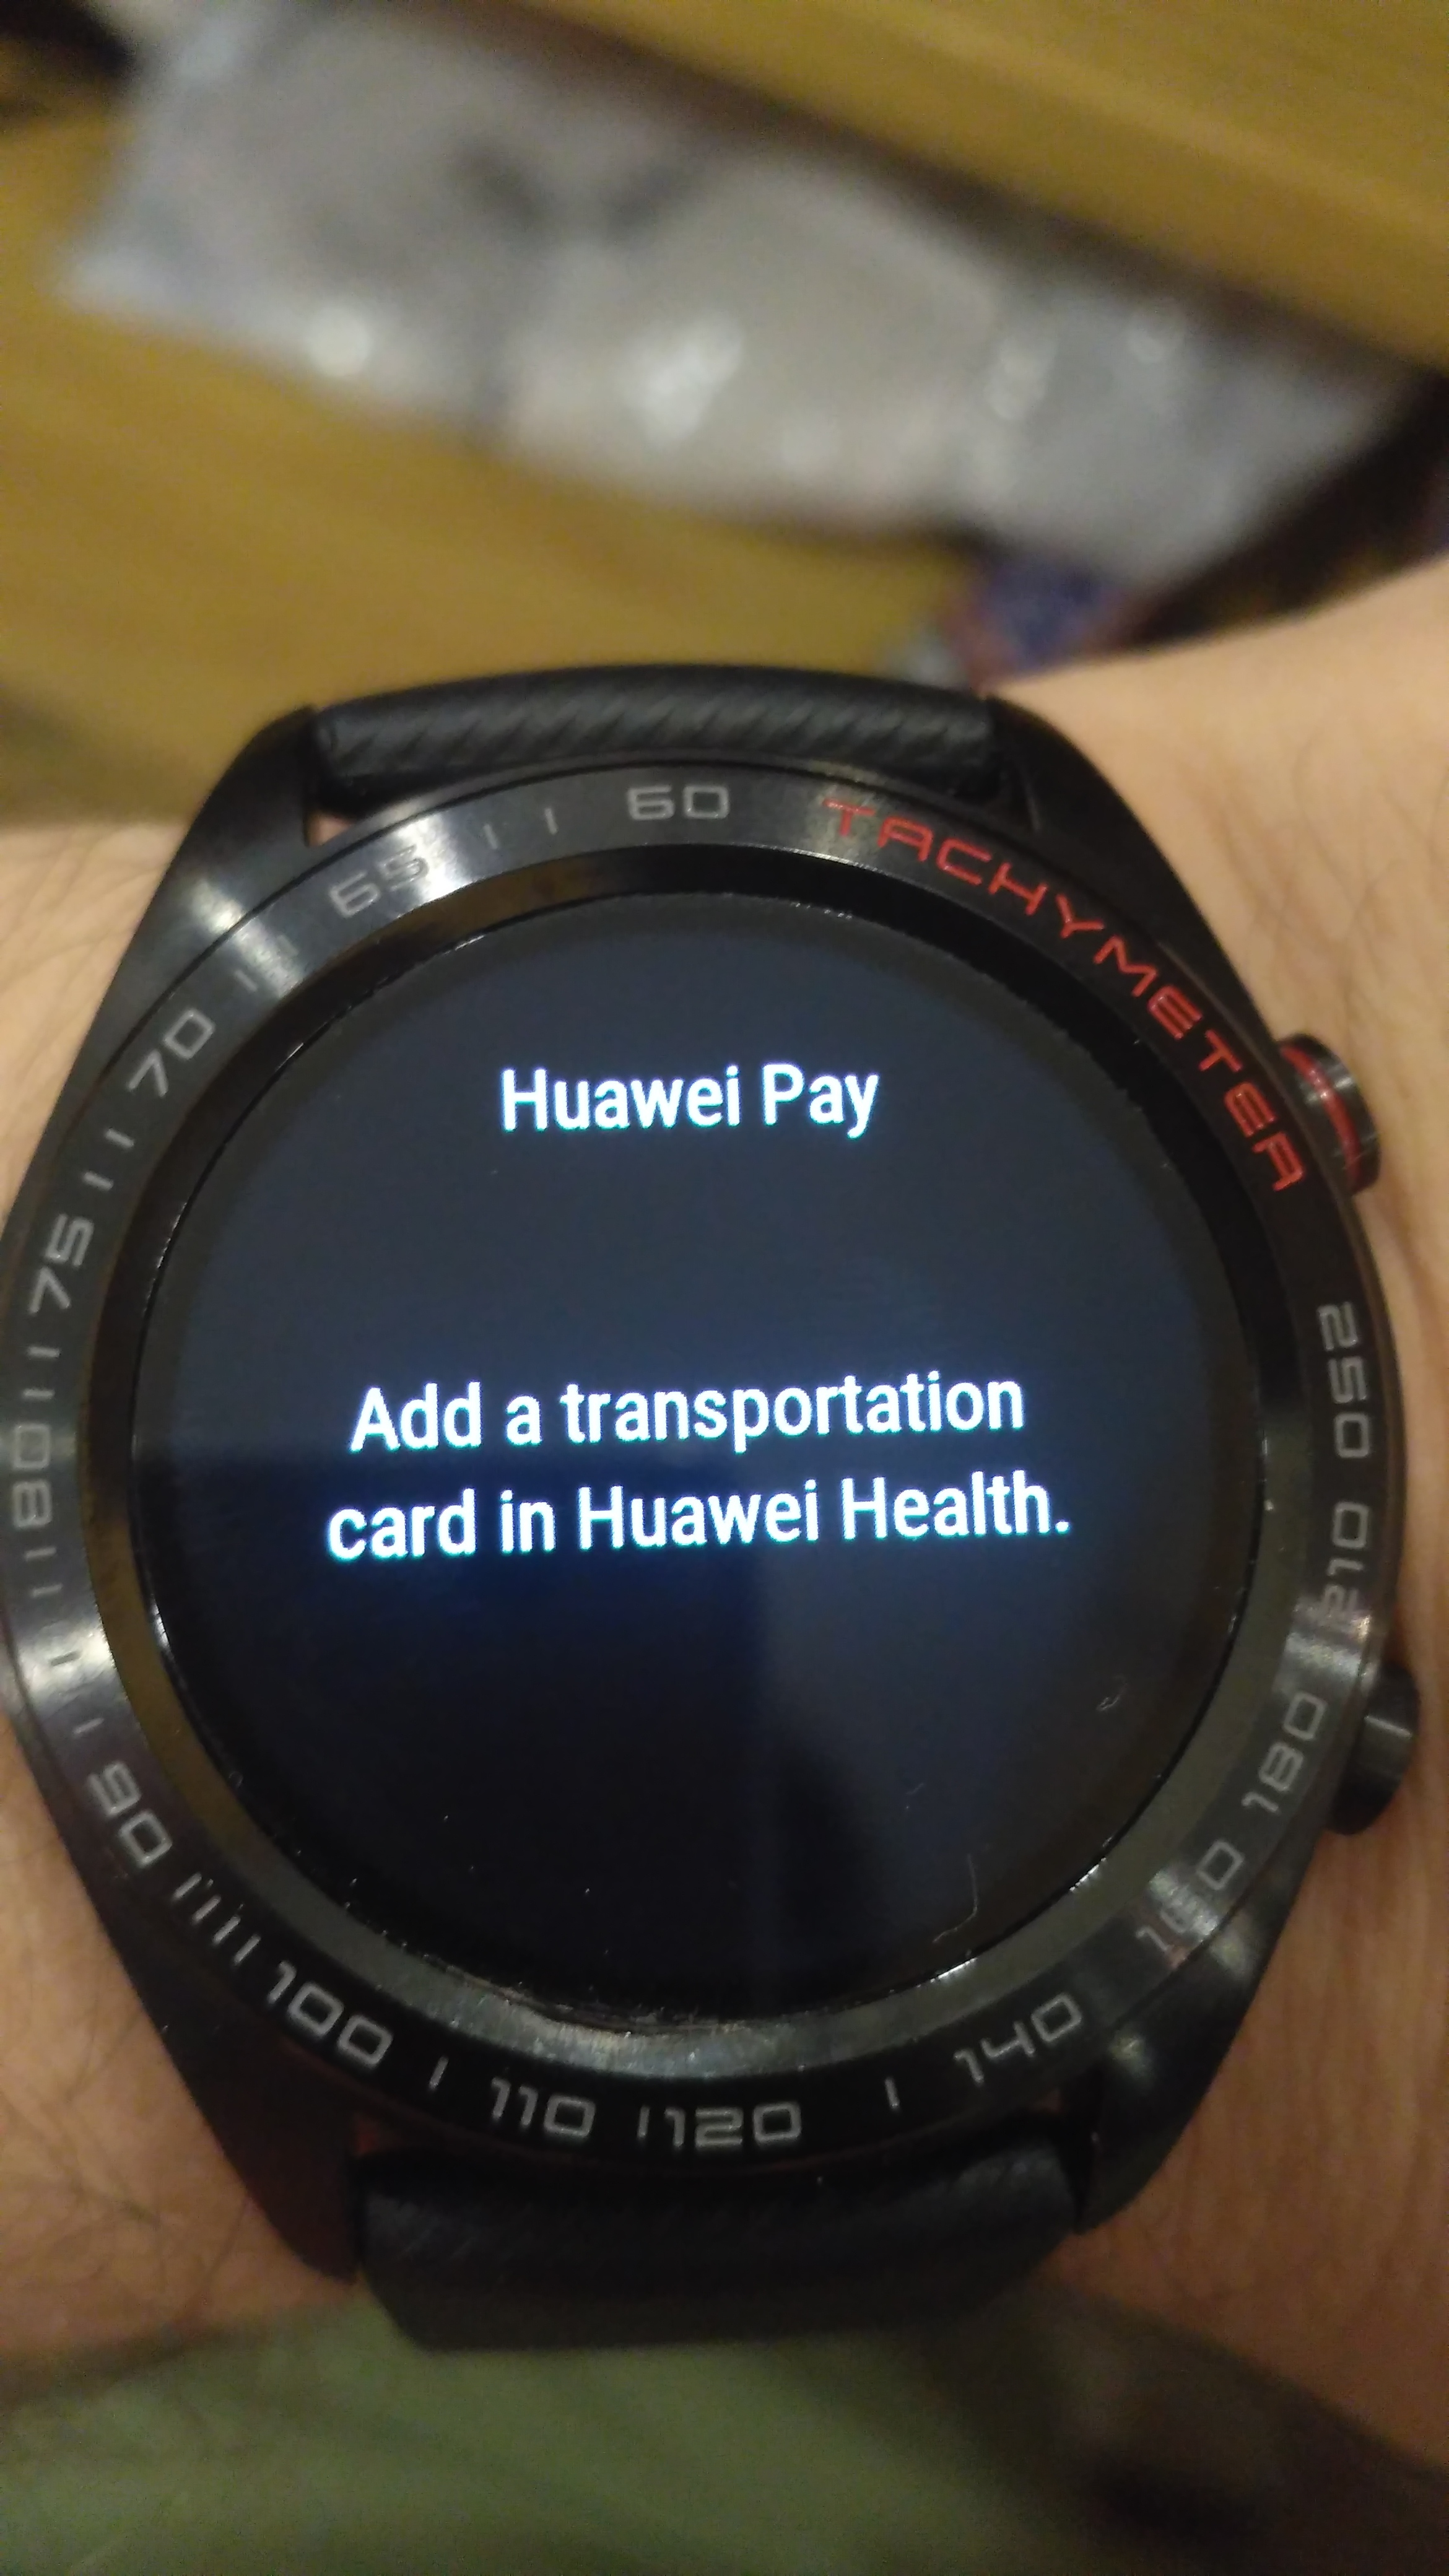 Honor Watch Magic NFC: How to add transportation card